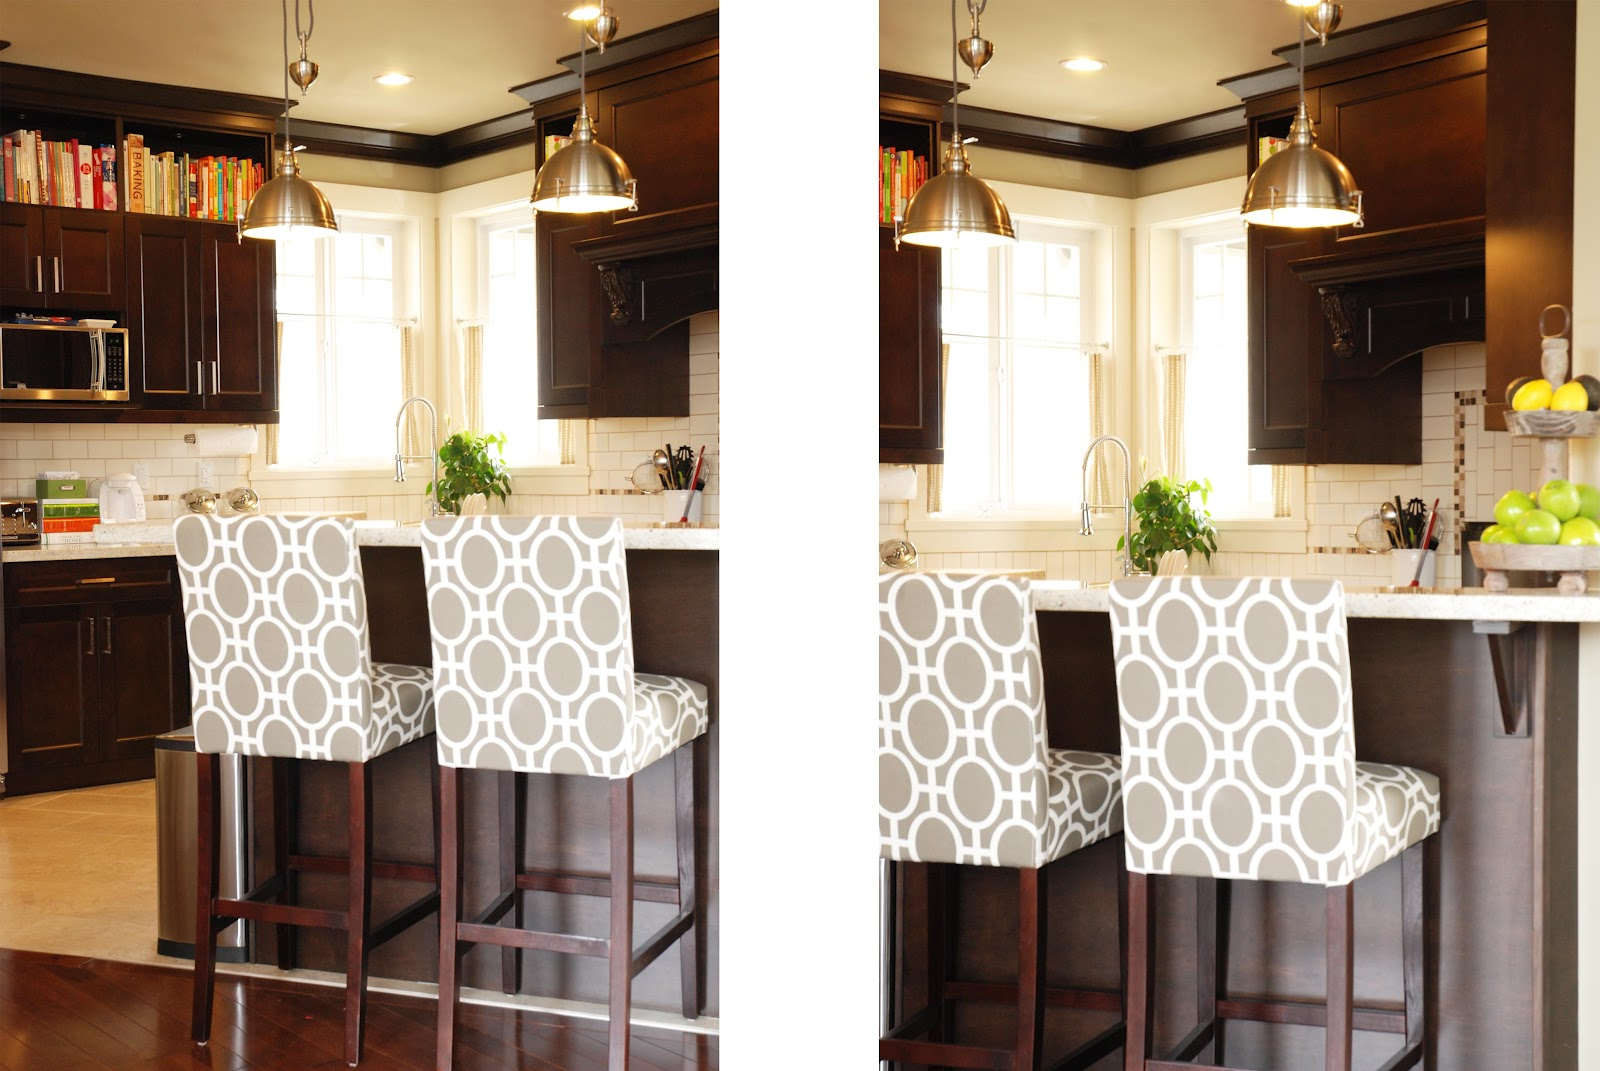 Kitchen counter stools with backs Photo - 1